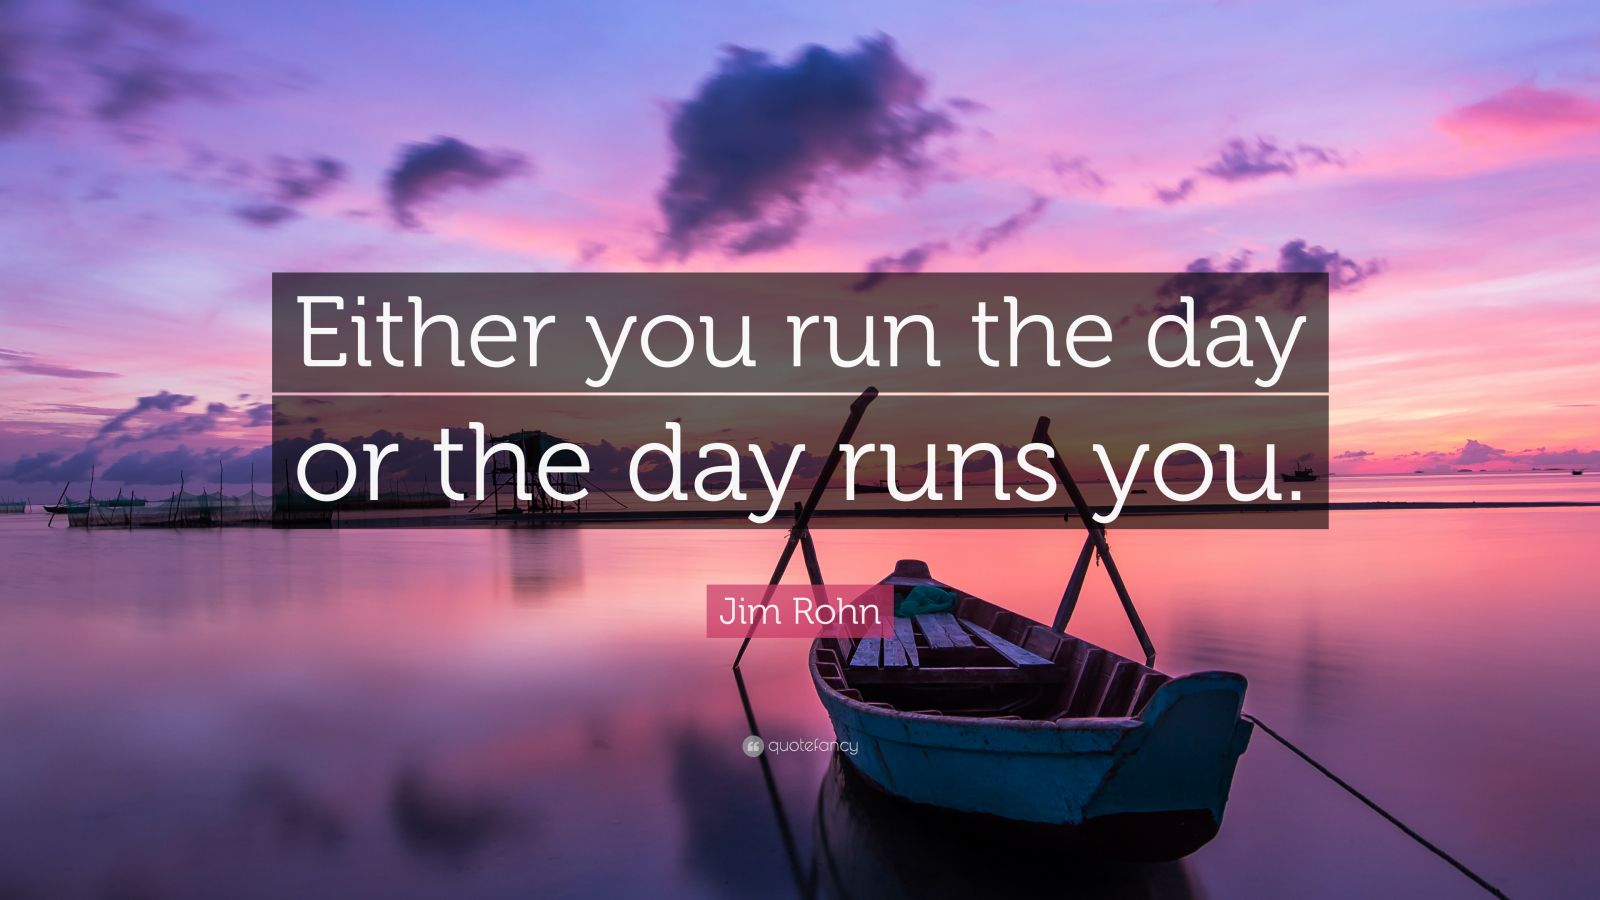 Motivational Life Quotes Wallpapers Jim Rohn Quote Either You Run The Day Or The Day Runs